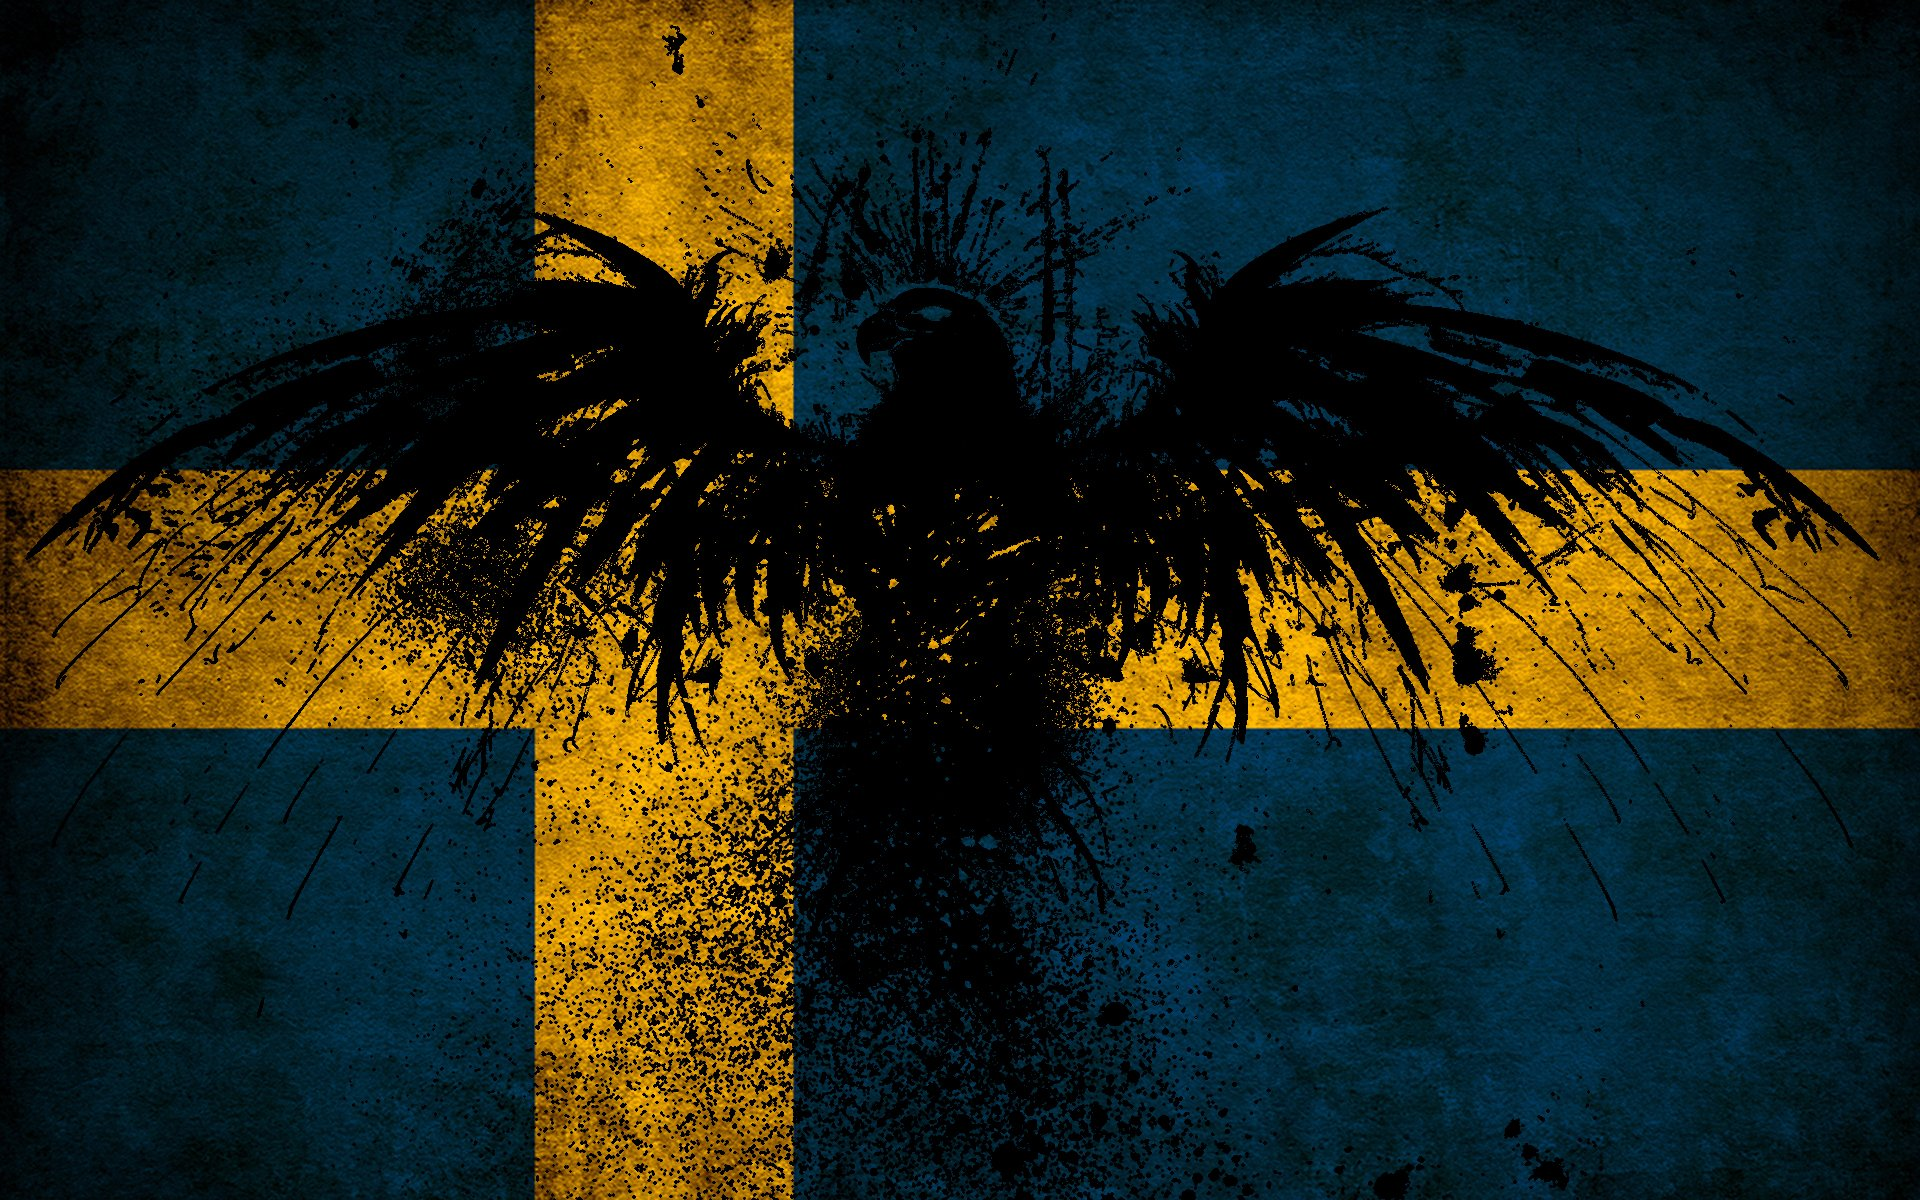 Swedish Flag Wallpaper 1920x1200 264488 KB 1920x1200